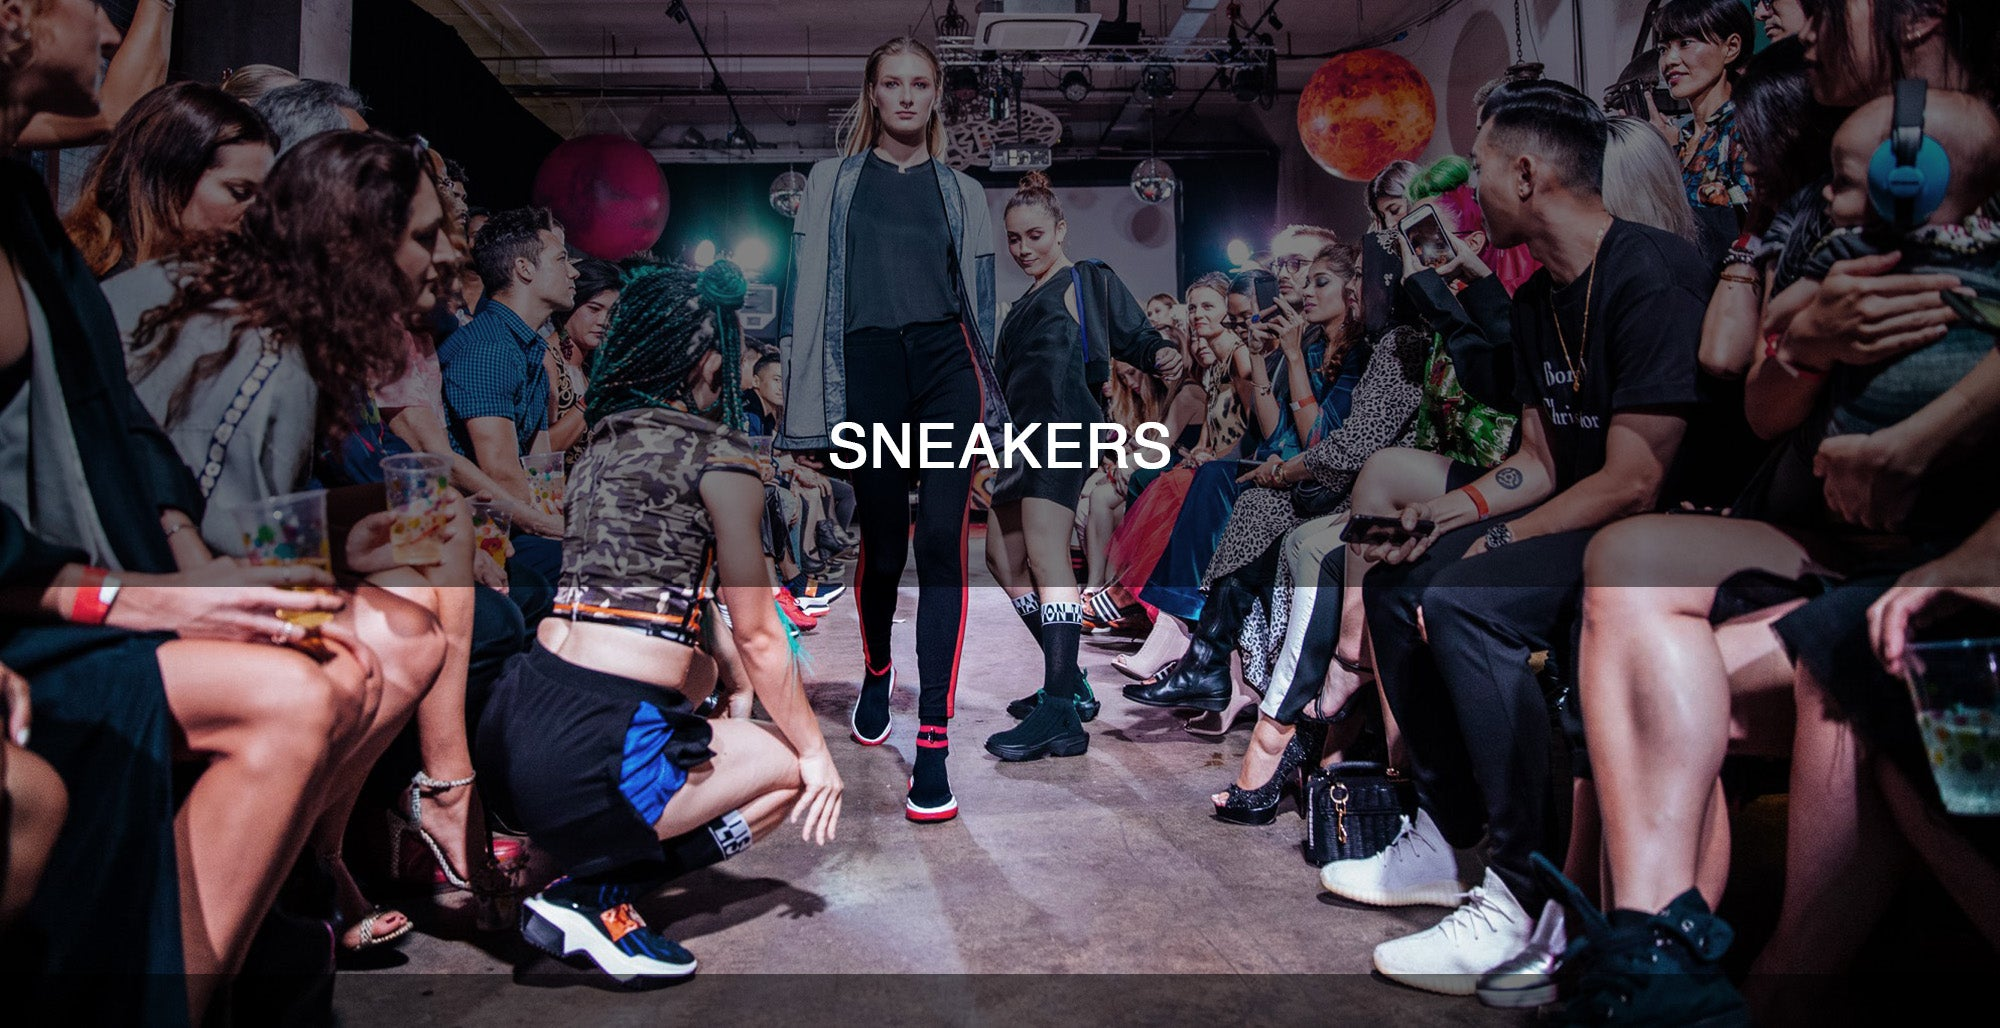 lisa von tang sneaker launch party. sock trainers. limited edition sneakers.